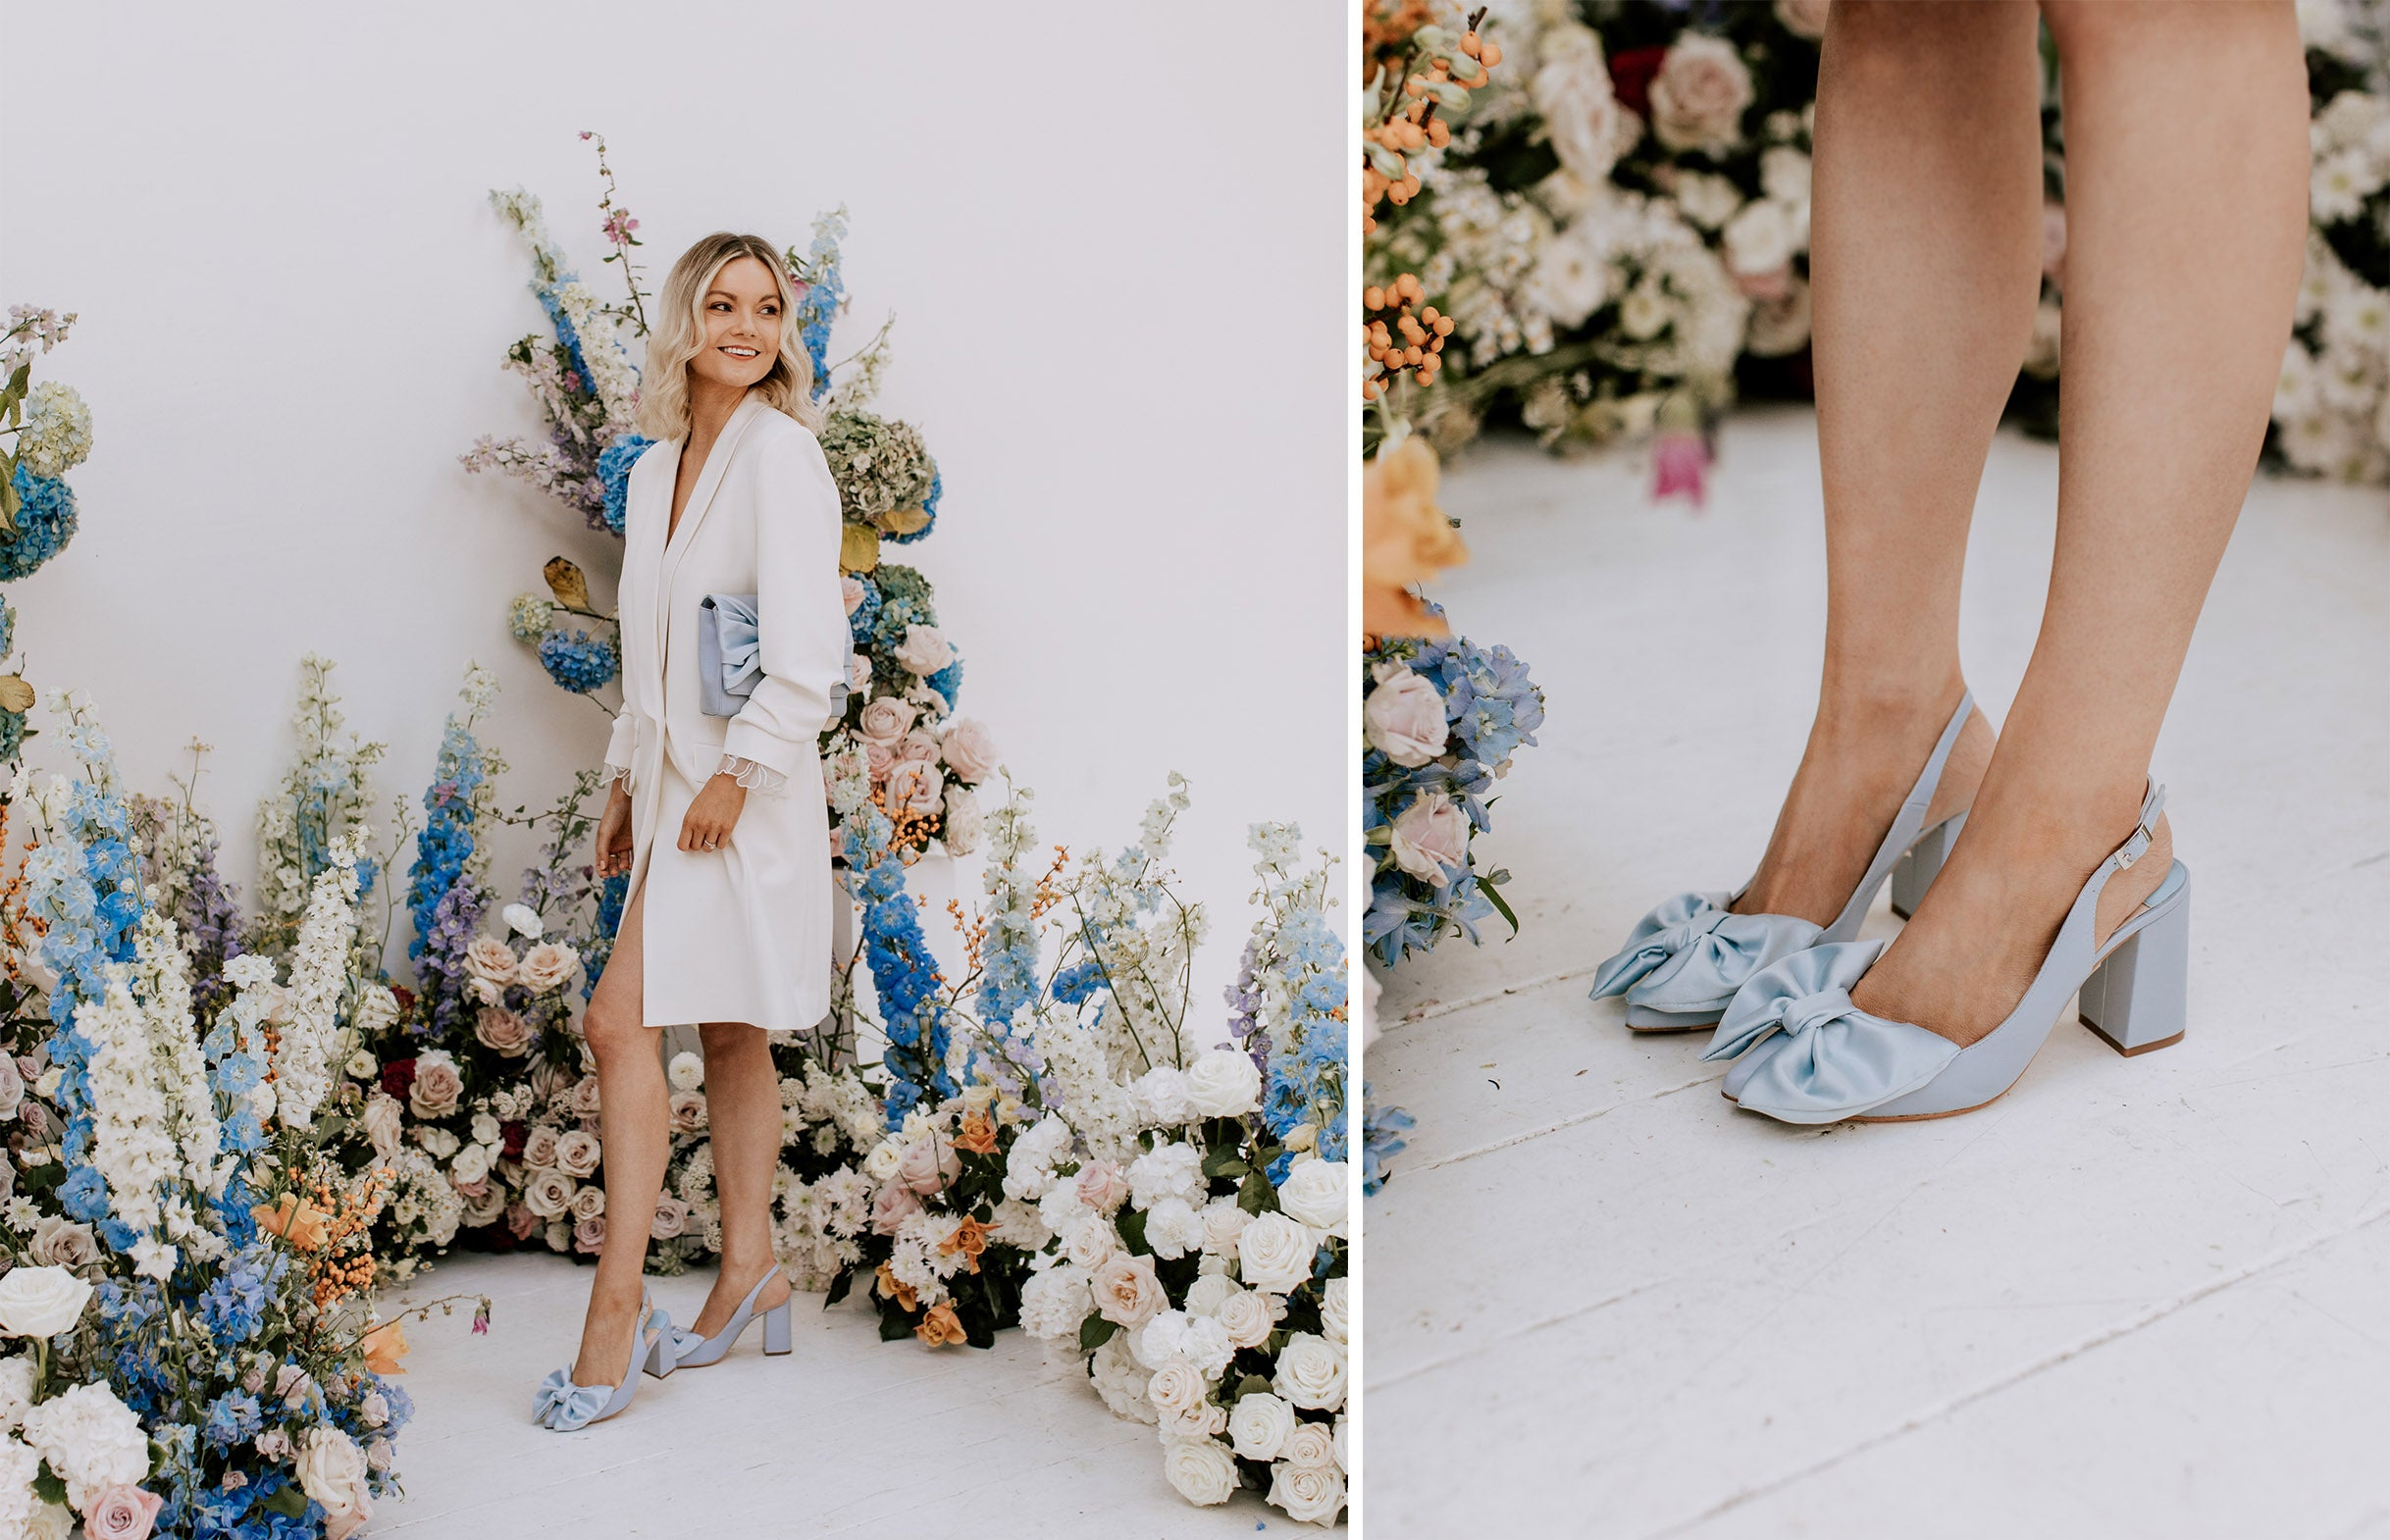 Jill Blue Wedding Shoes by Charlotte Mills